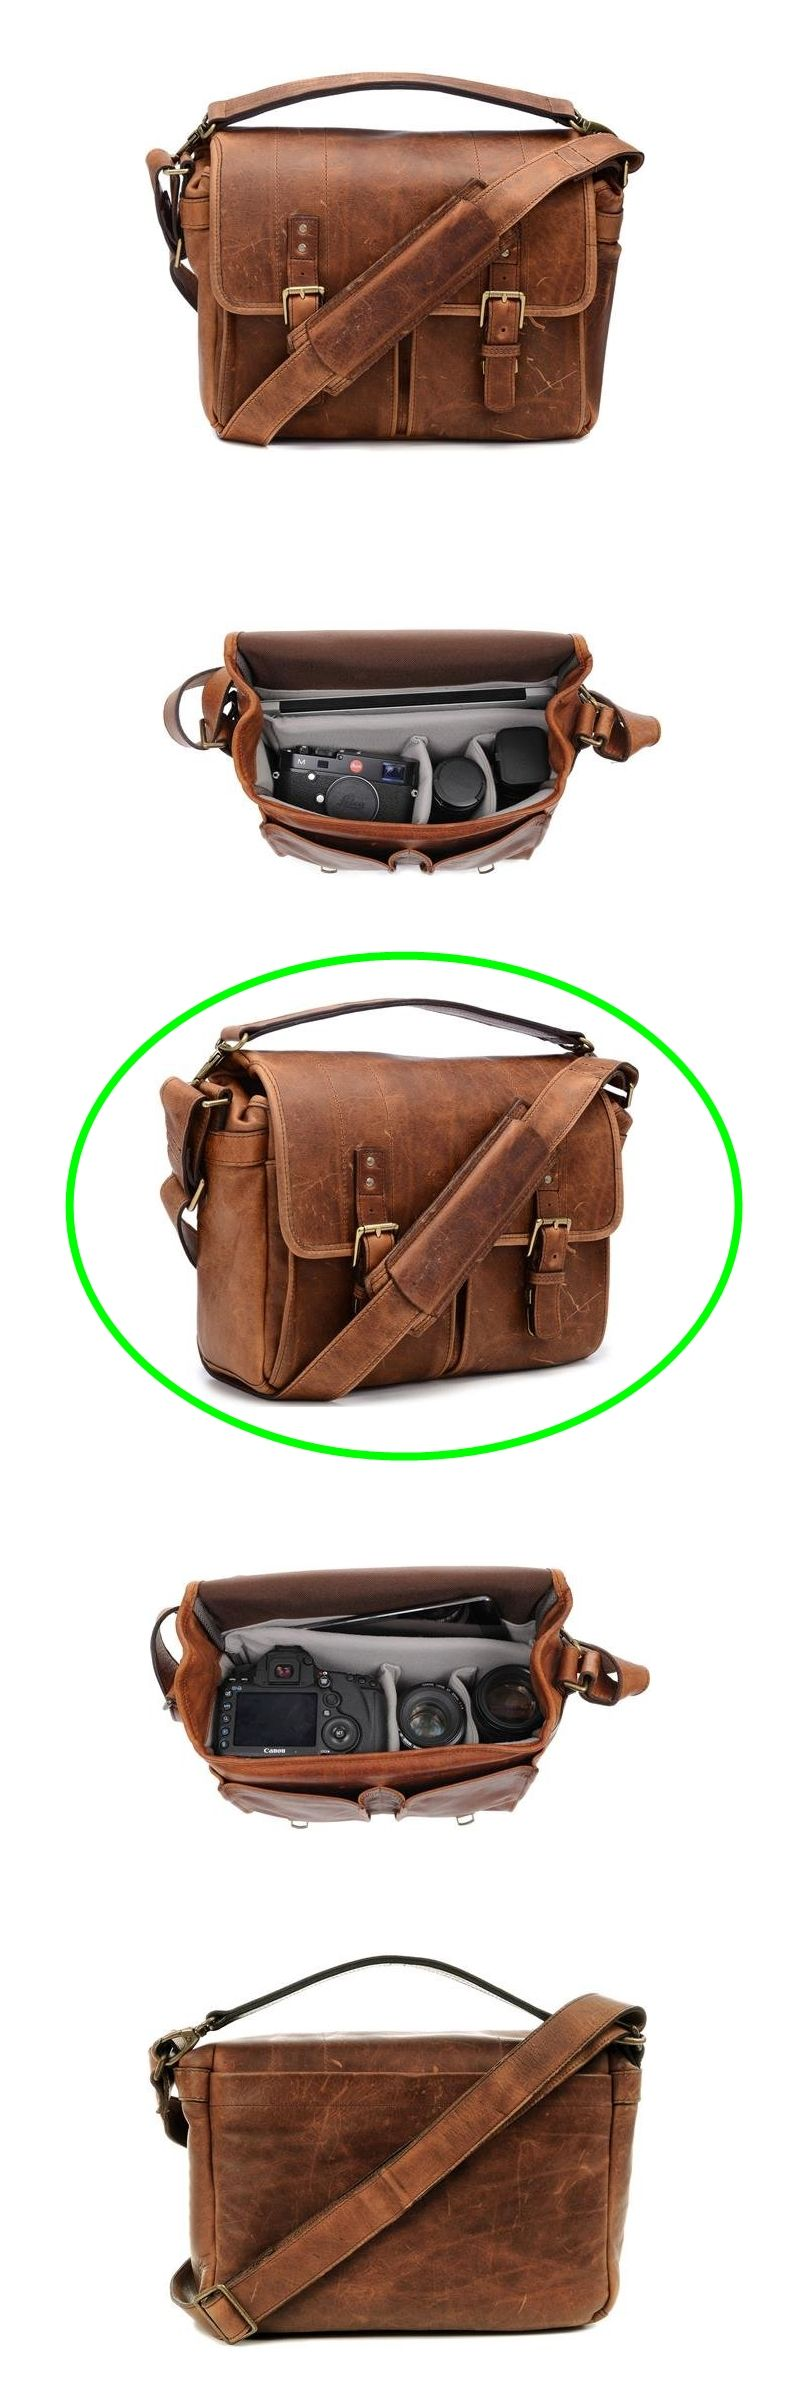 b715beef4c ONA - The Prince Street - Camera Messenger Bag - Antique Cognac Leather   vintage  classic  travel  camerabag  messengerbag  fashion  retro  leica   fujifilm ...